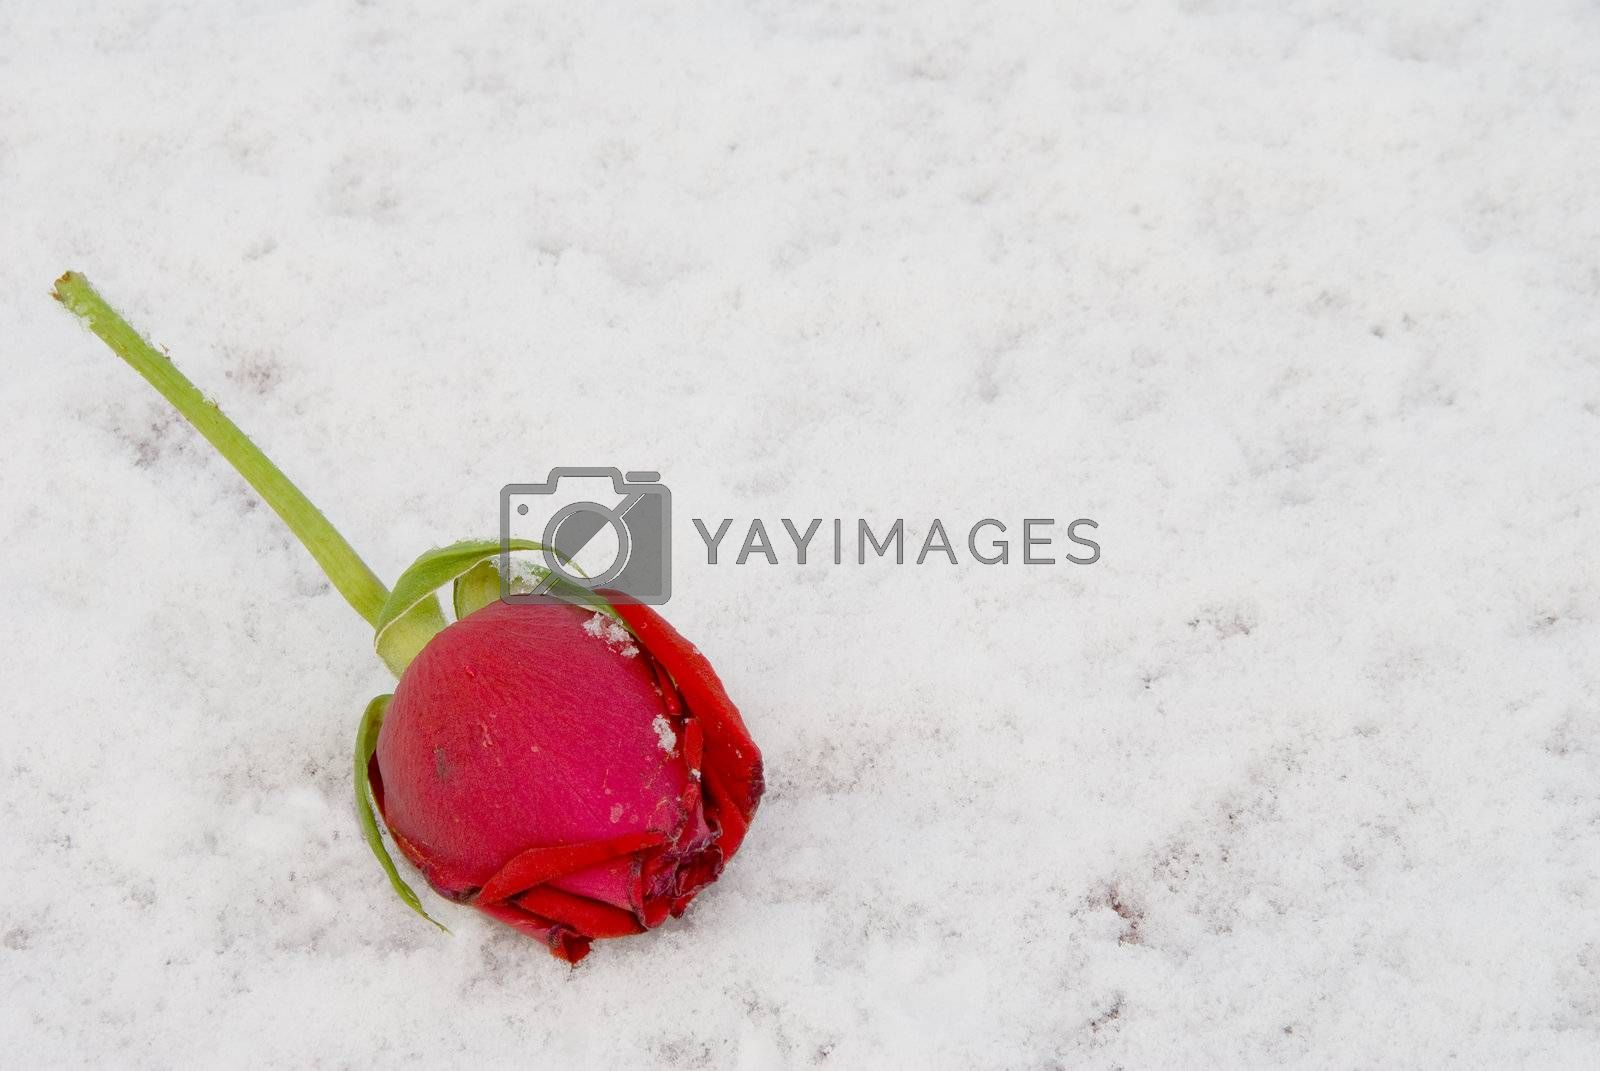 A beautiful red rose laying in the snow.